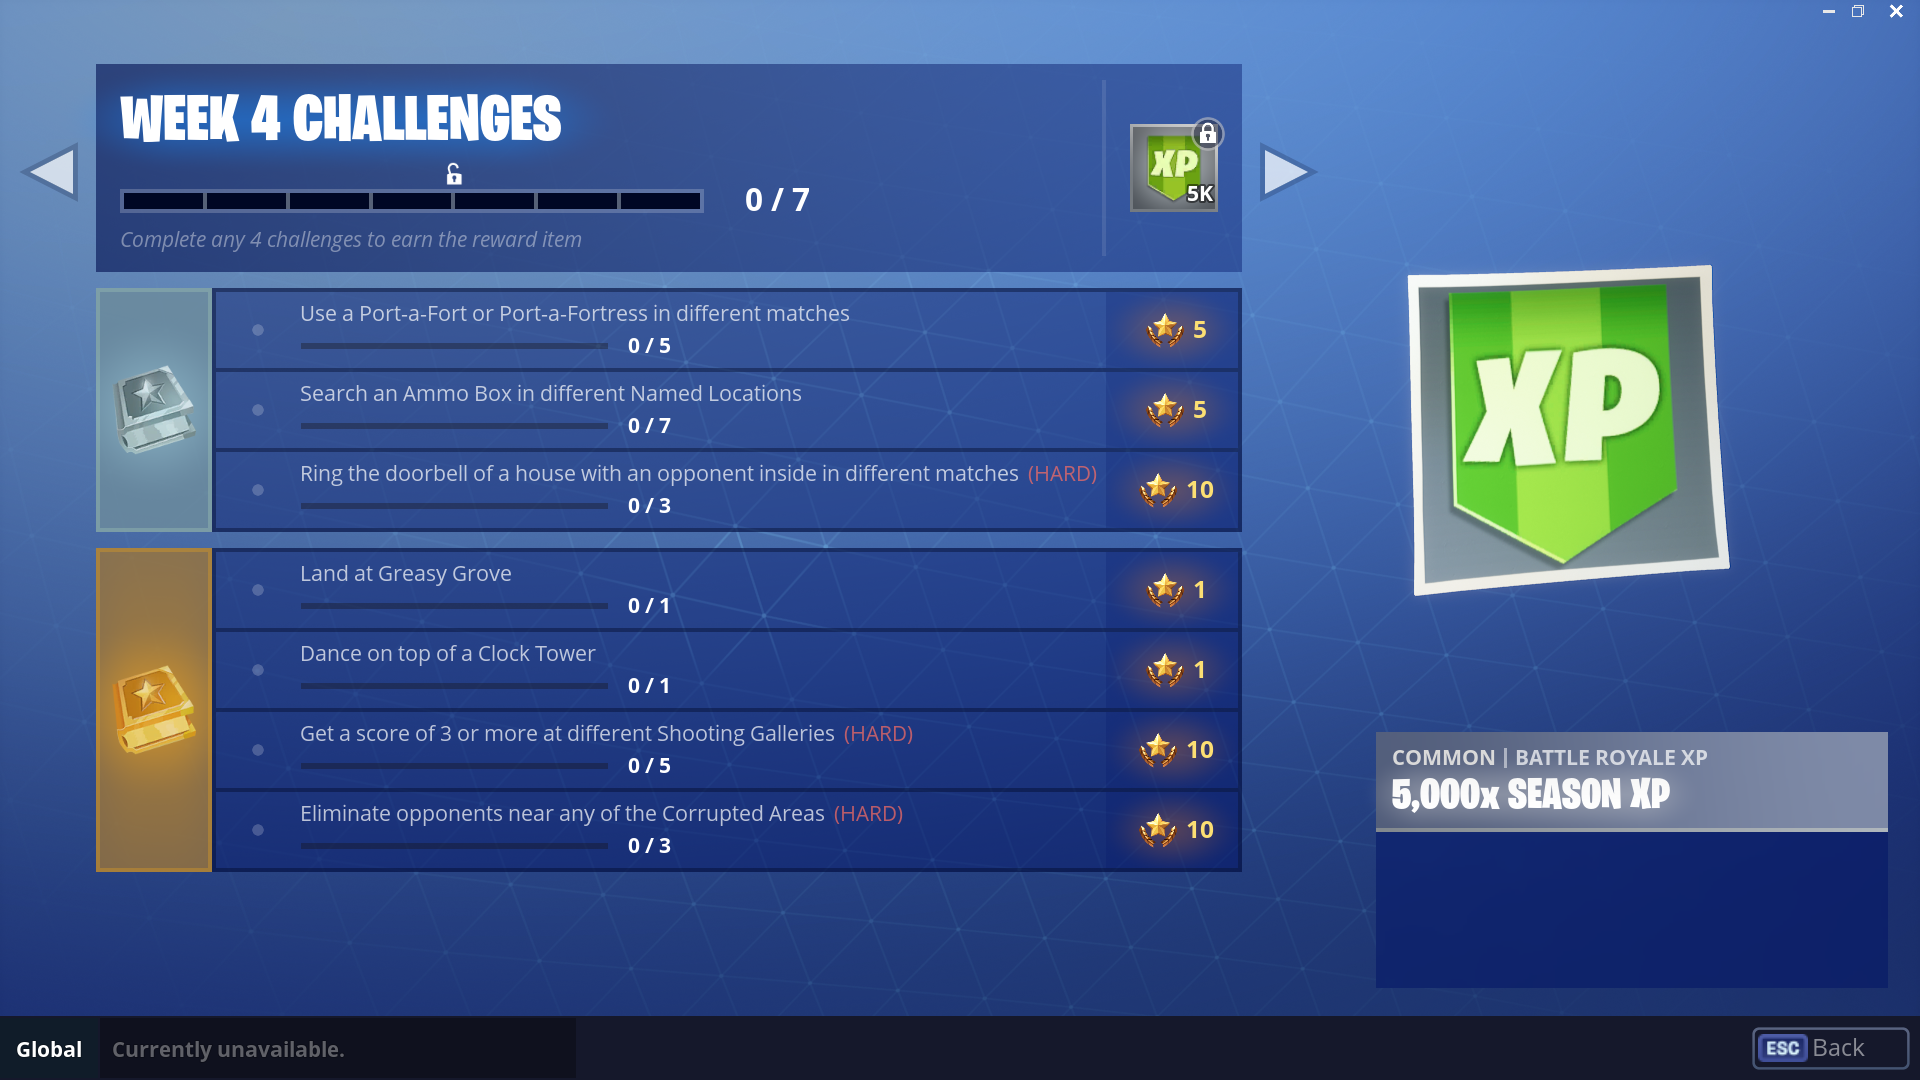 Free Battle Pass Challenges For Week 4 Season 6 Of Fortnite